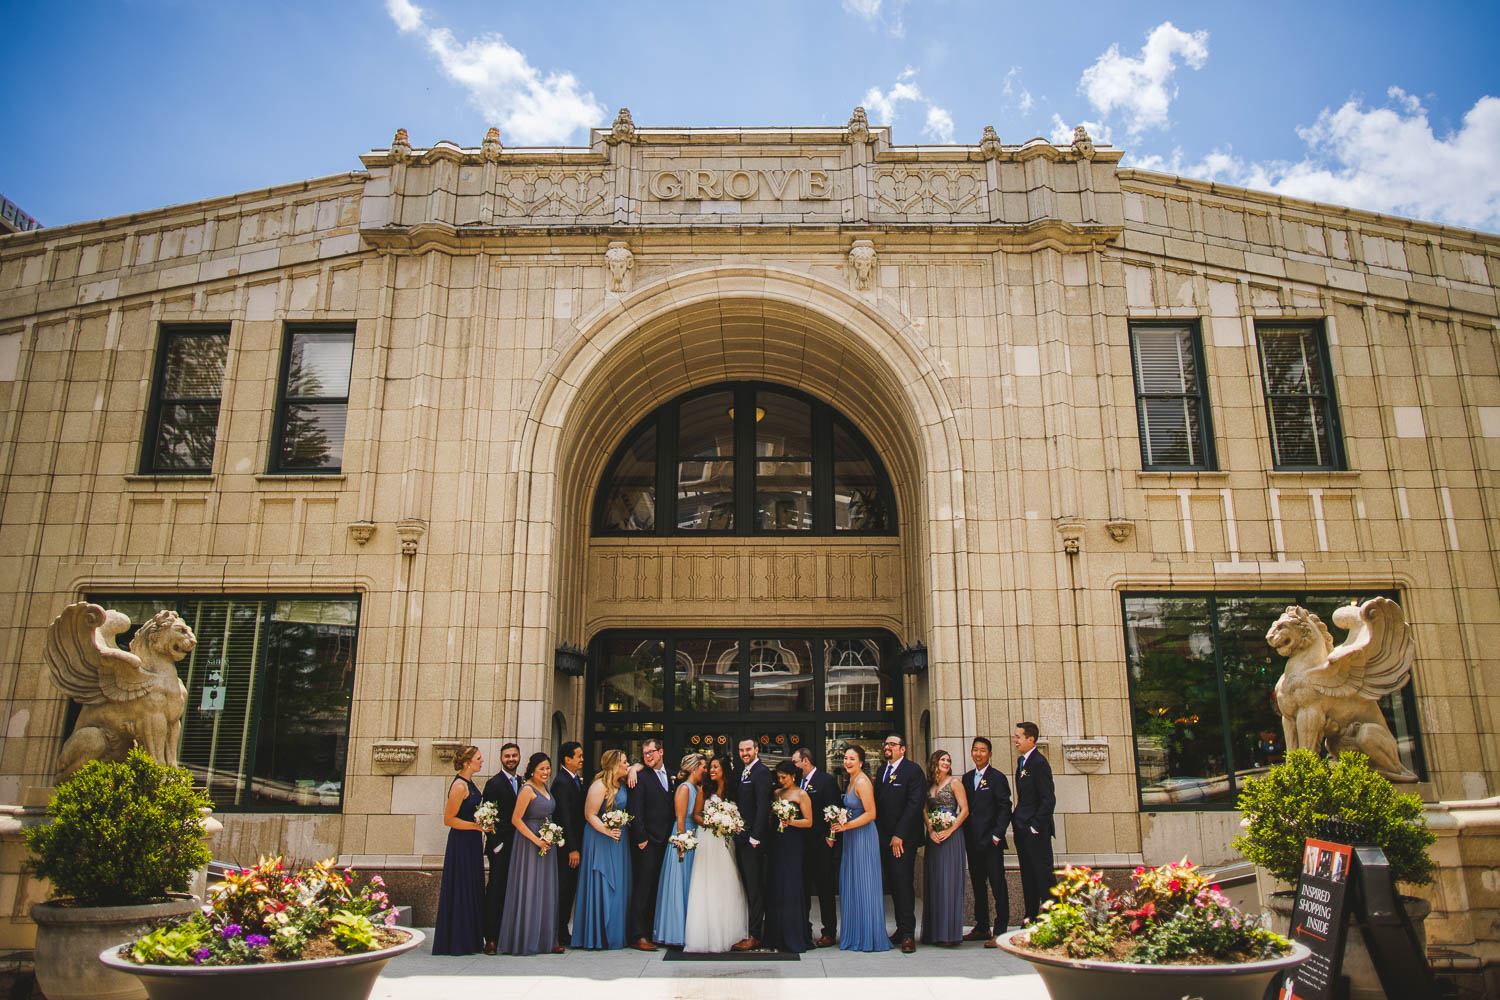 Grove Arcade wedding